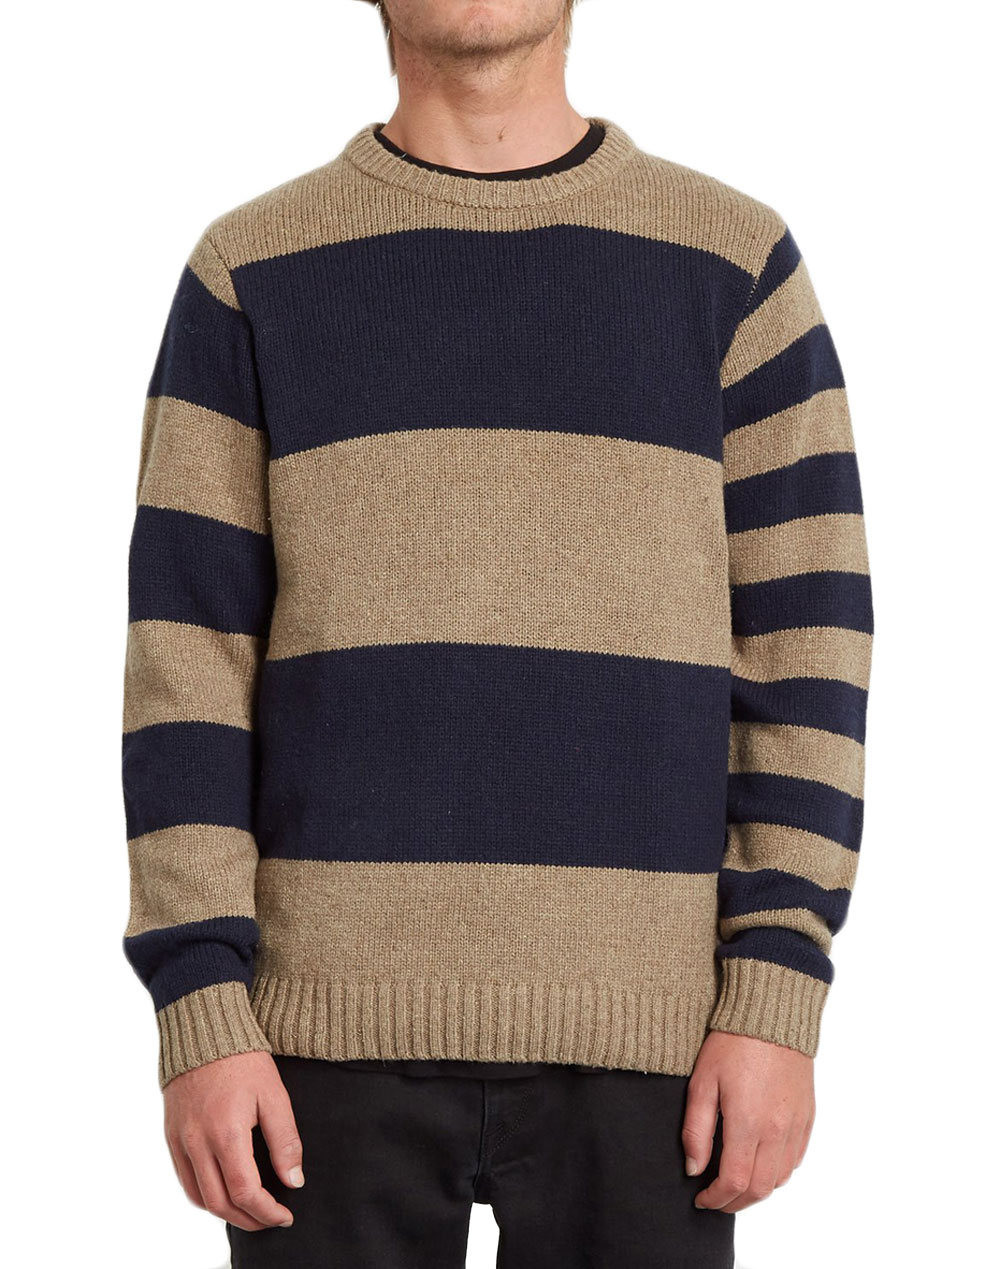 Volcom Edmonder Striped Sweater (A0731904 KHA) Khaki